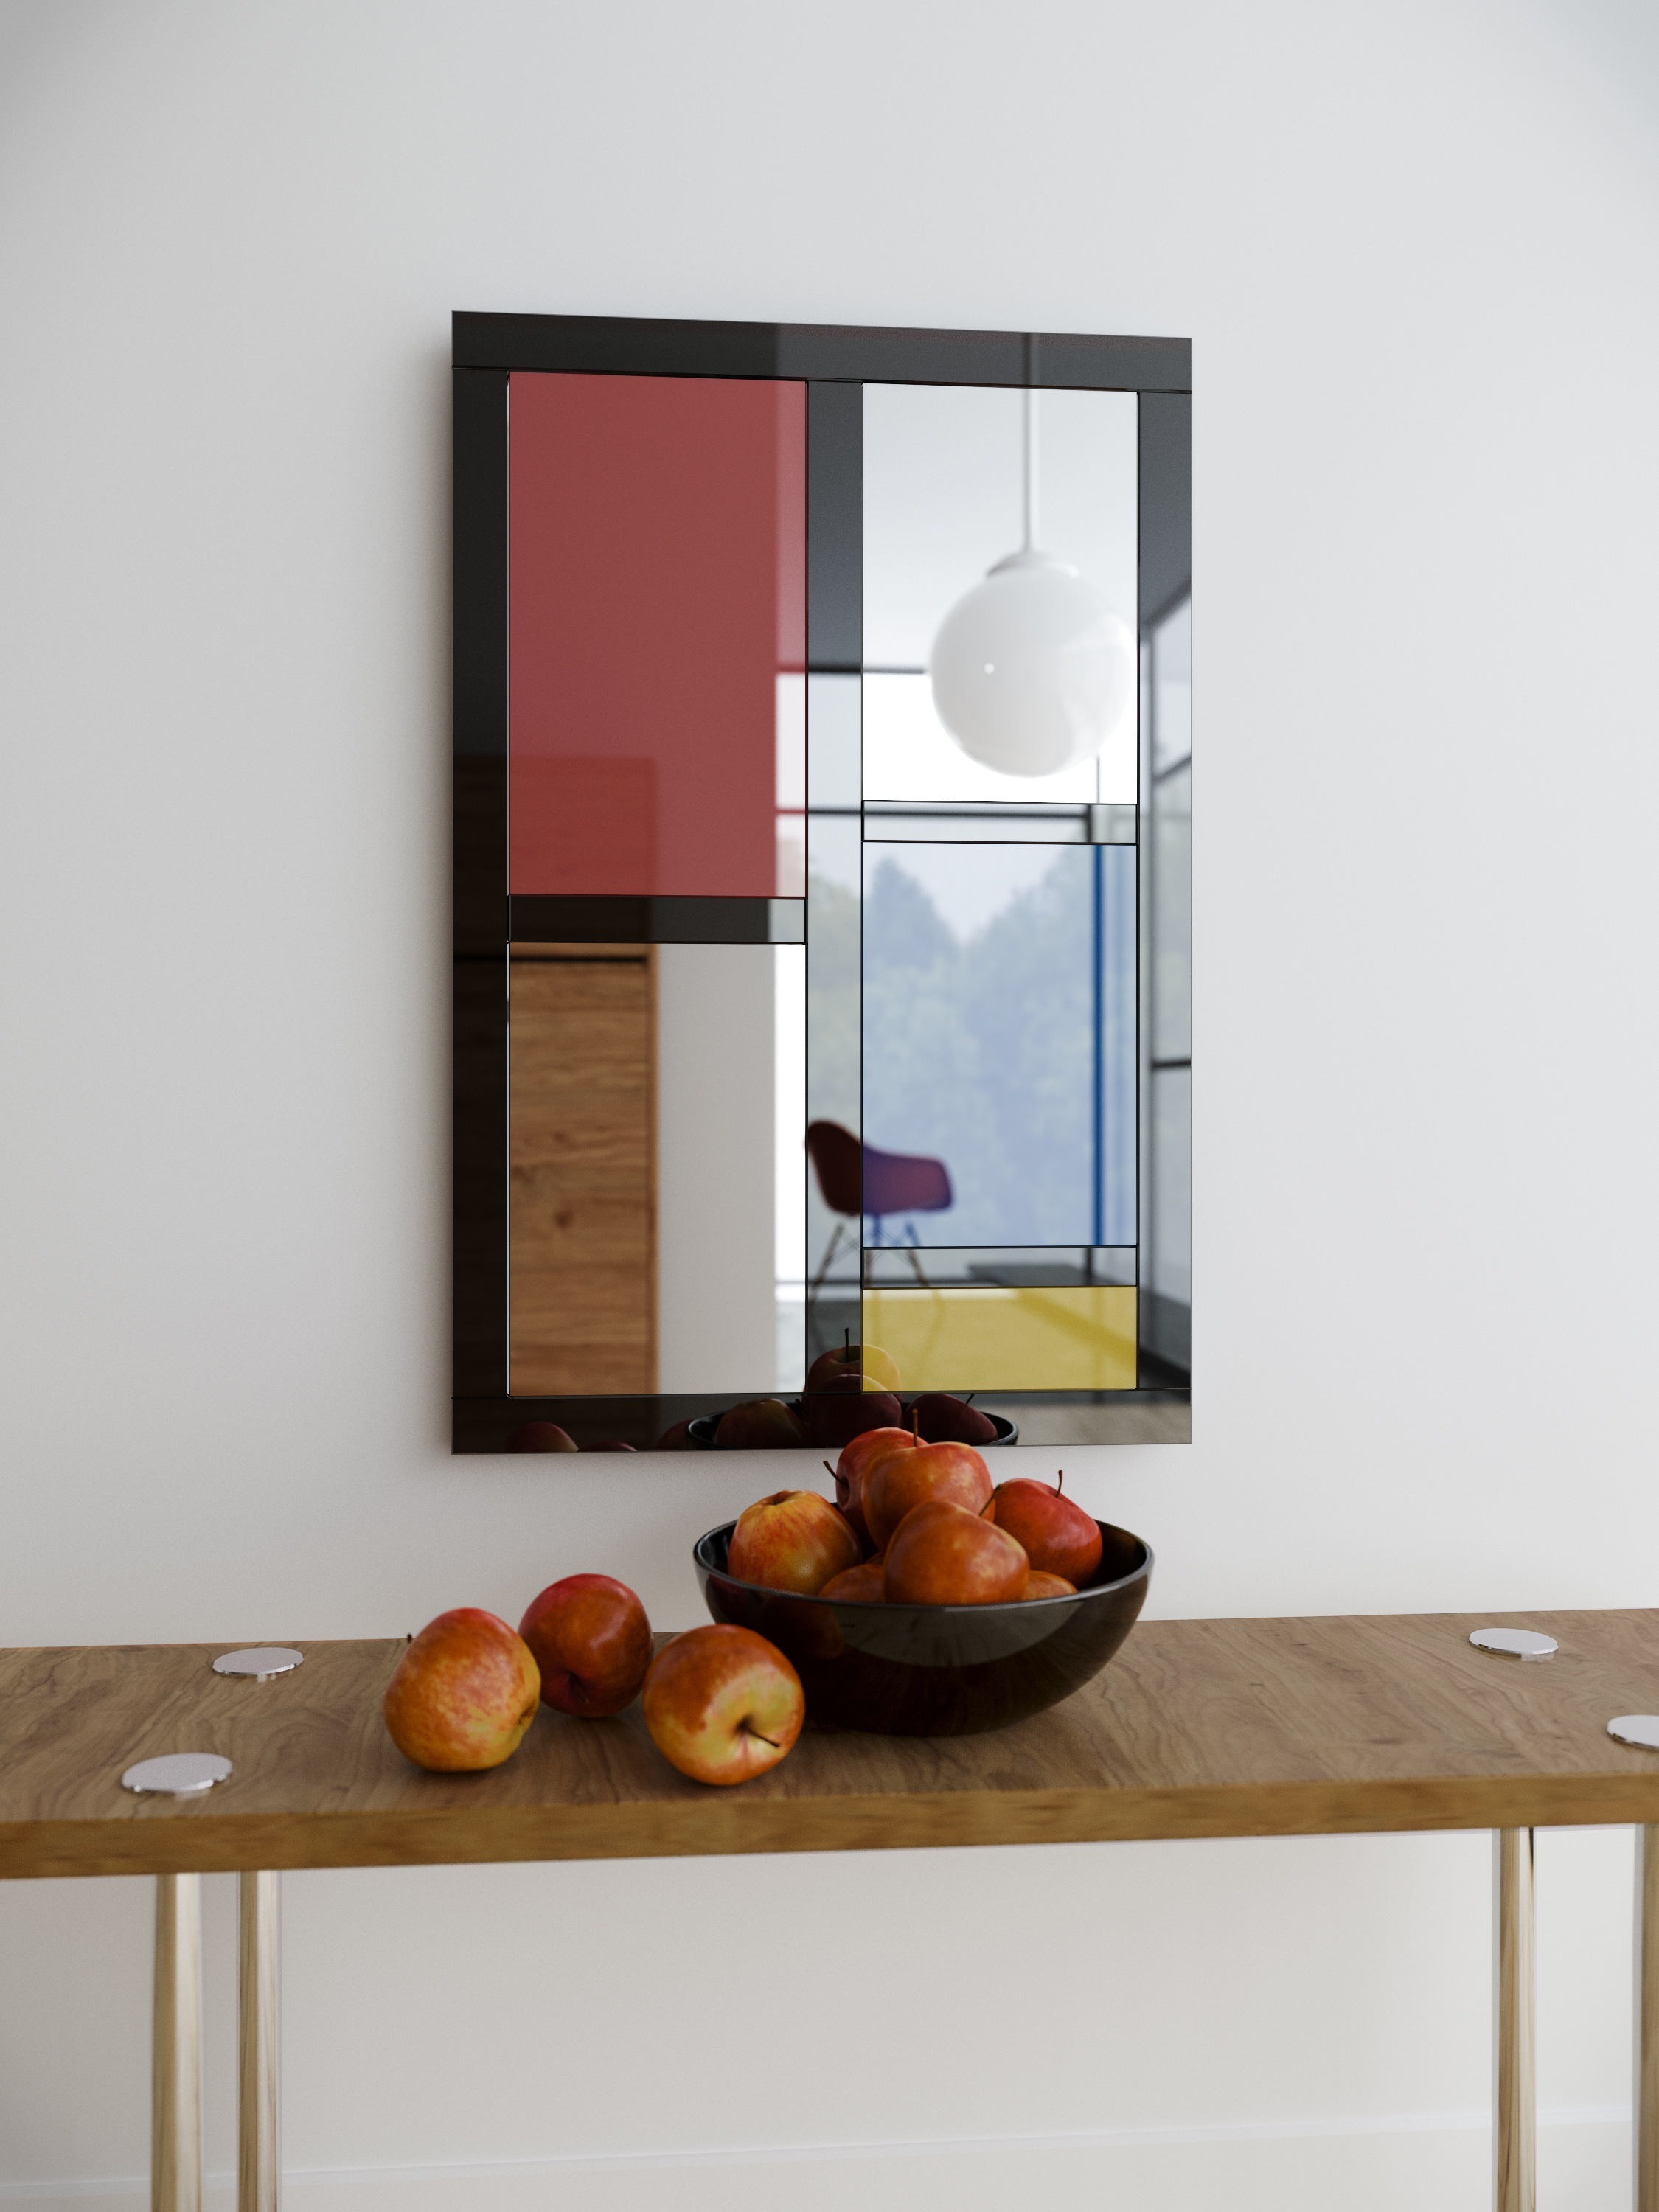 Mondrian inspired colorful wall mirrors, photographed in residence outside of LA.